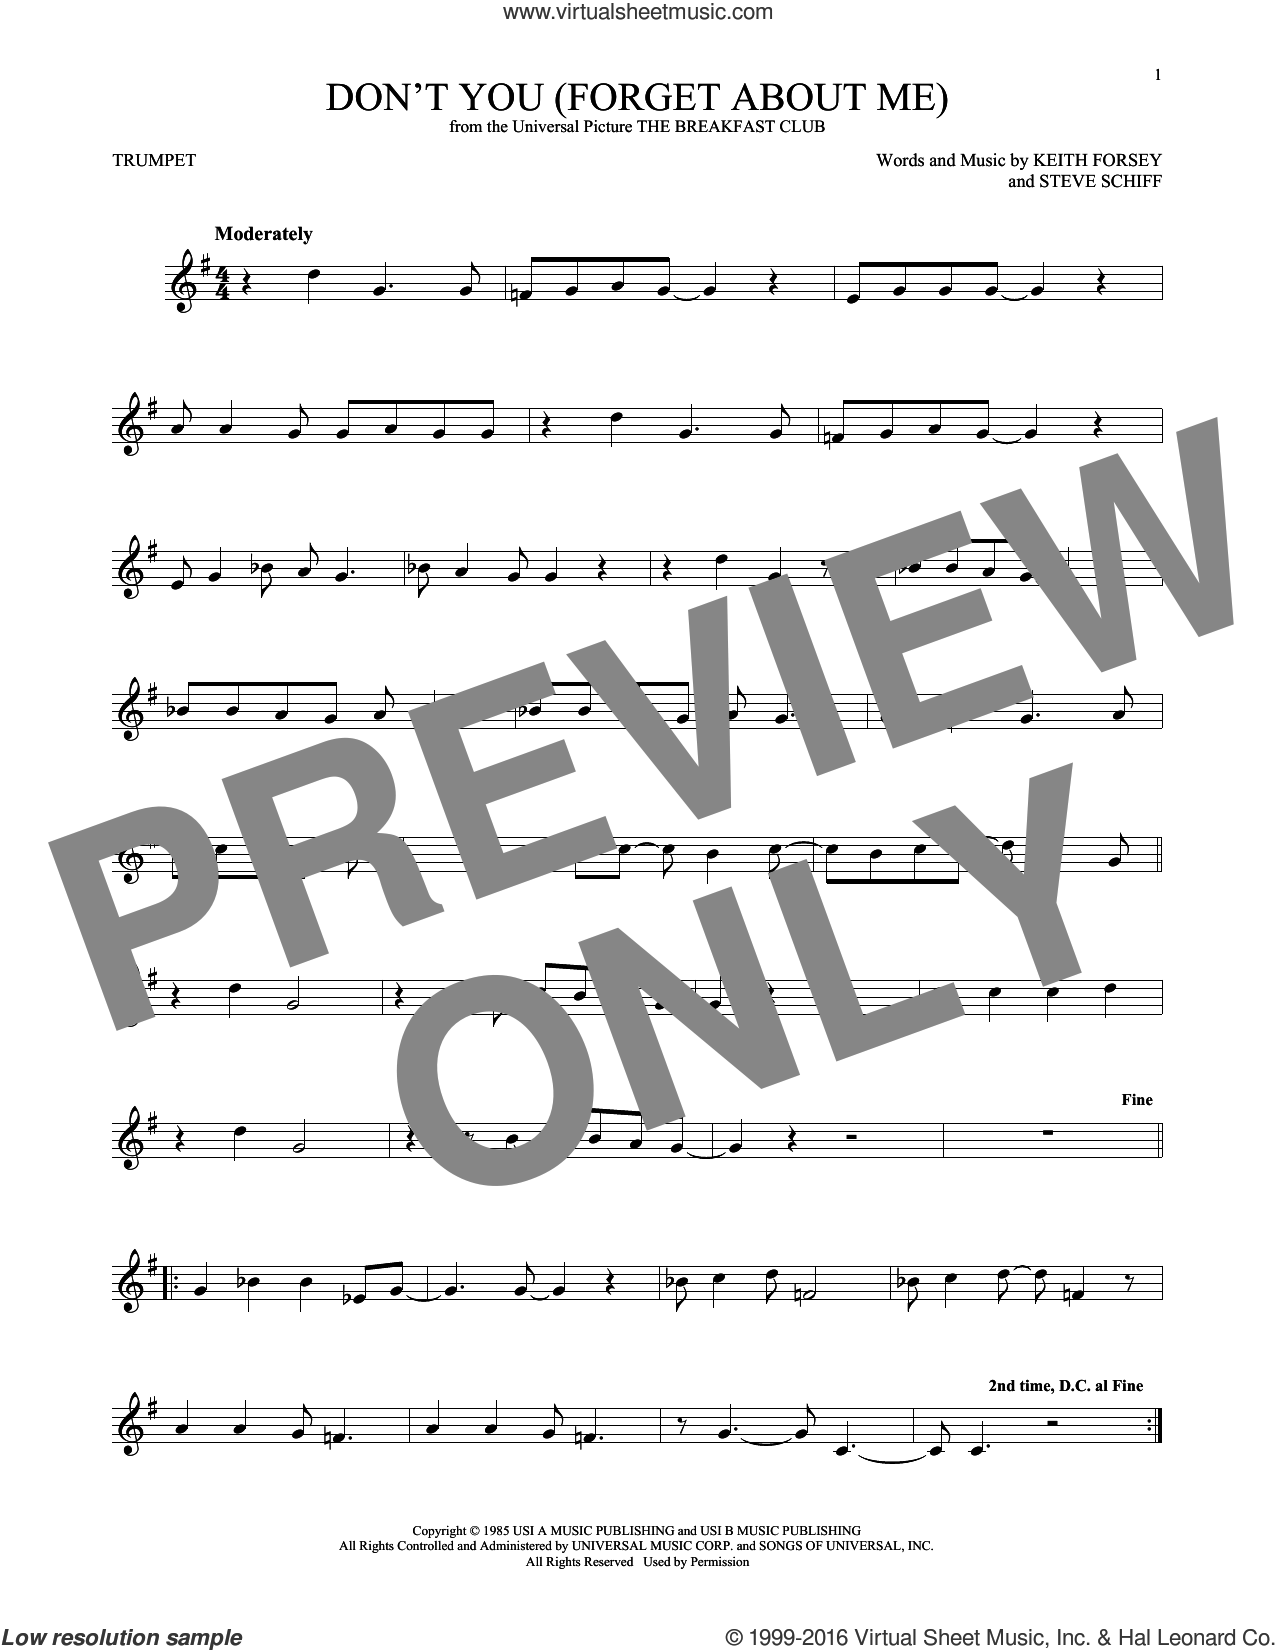 Don't You (Forget About Me) sheet music for trumpet solo by Simple Minds, Hawk Nelson, Keith Forsey and Steve Schiff, intermediate